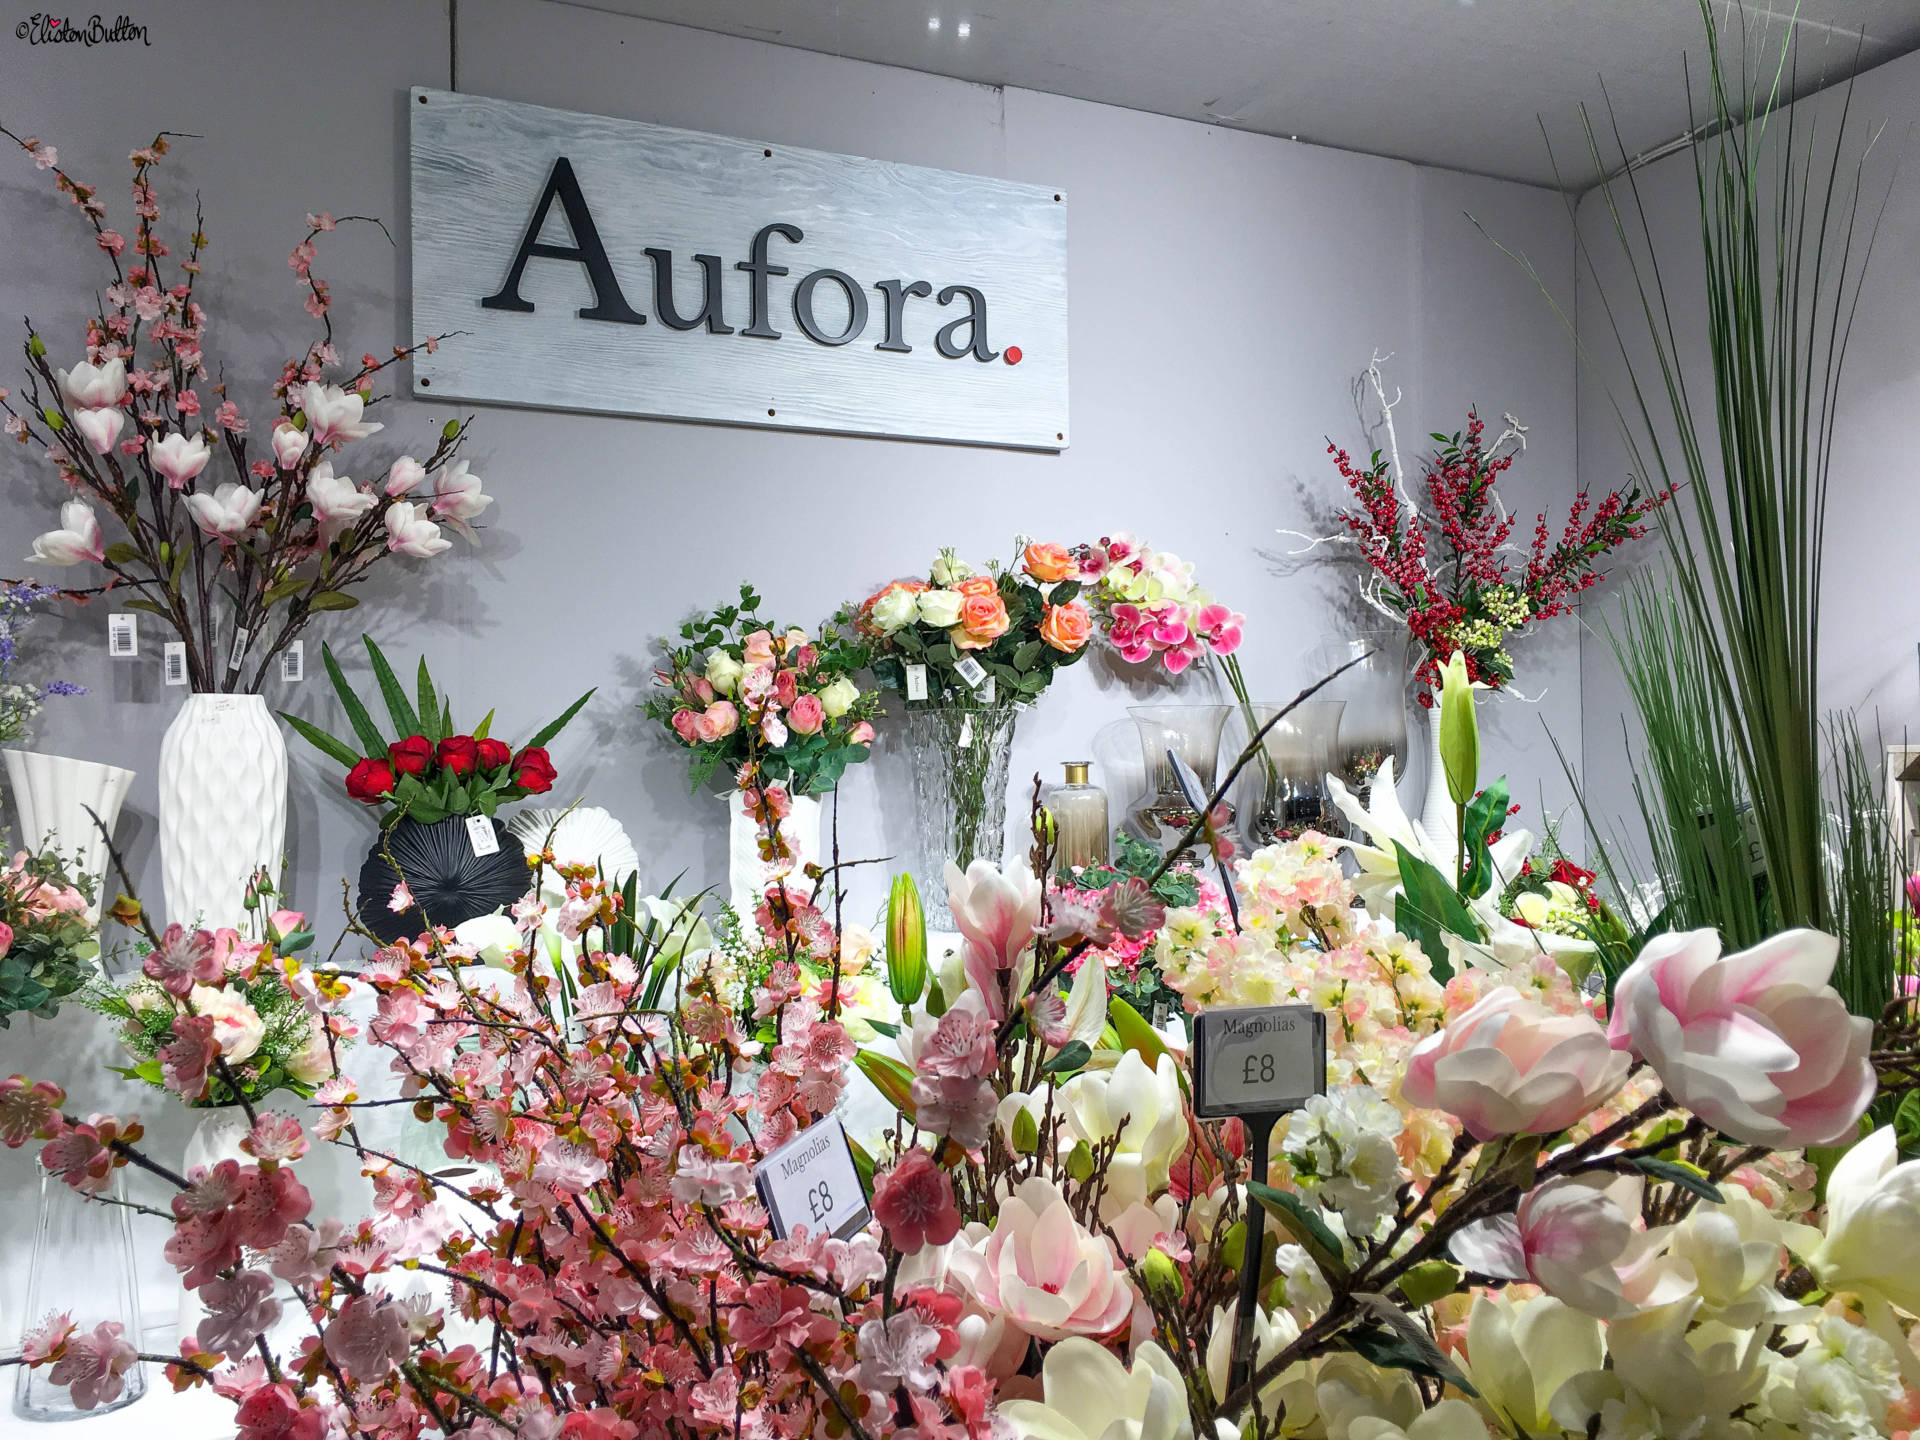 Aufora Silk Flowers at Grand Designs Live 2017 with Eliston Button - Grand Designs Live 2017 – Part Two at www.elistonbutton.com - Eliston Button - That Crafty Kid – Art, Design, Craft & Adventure.